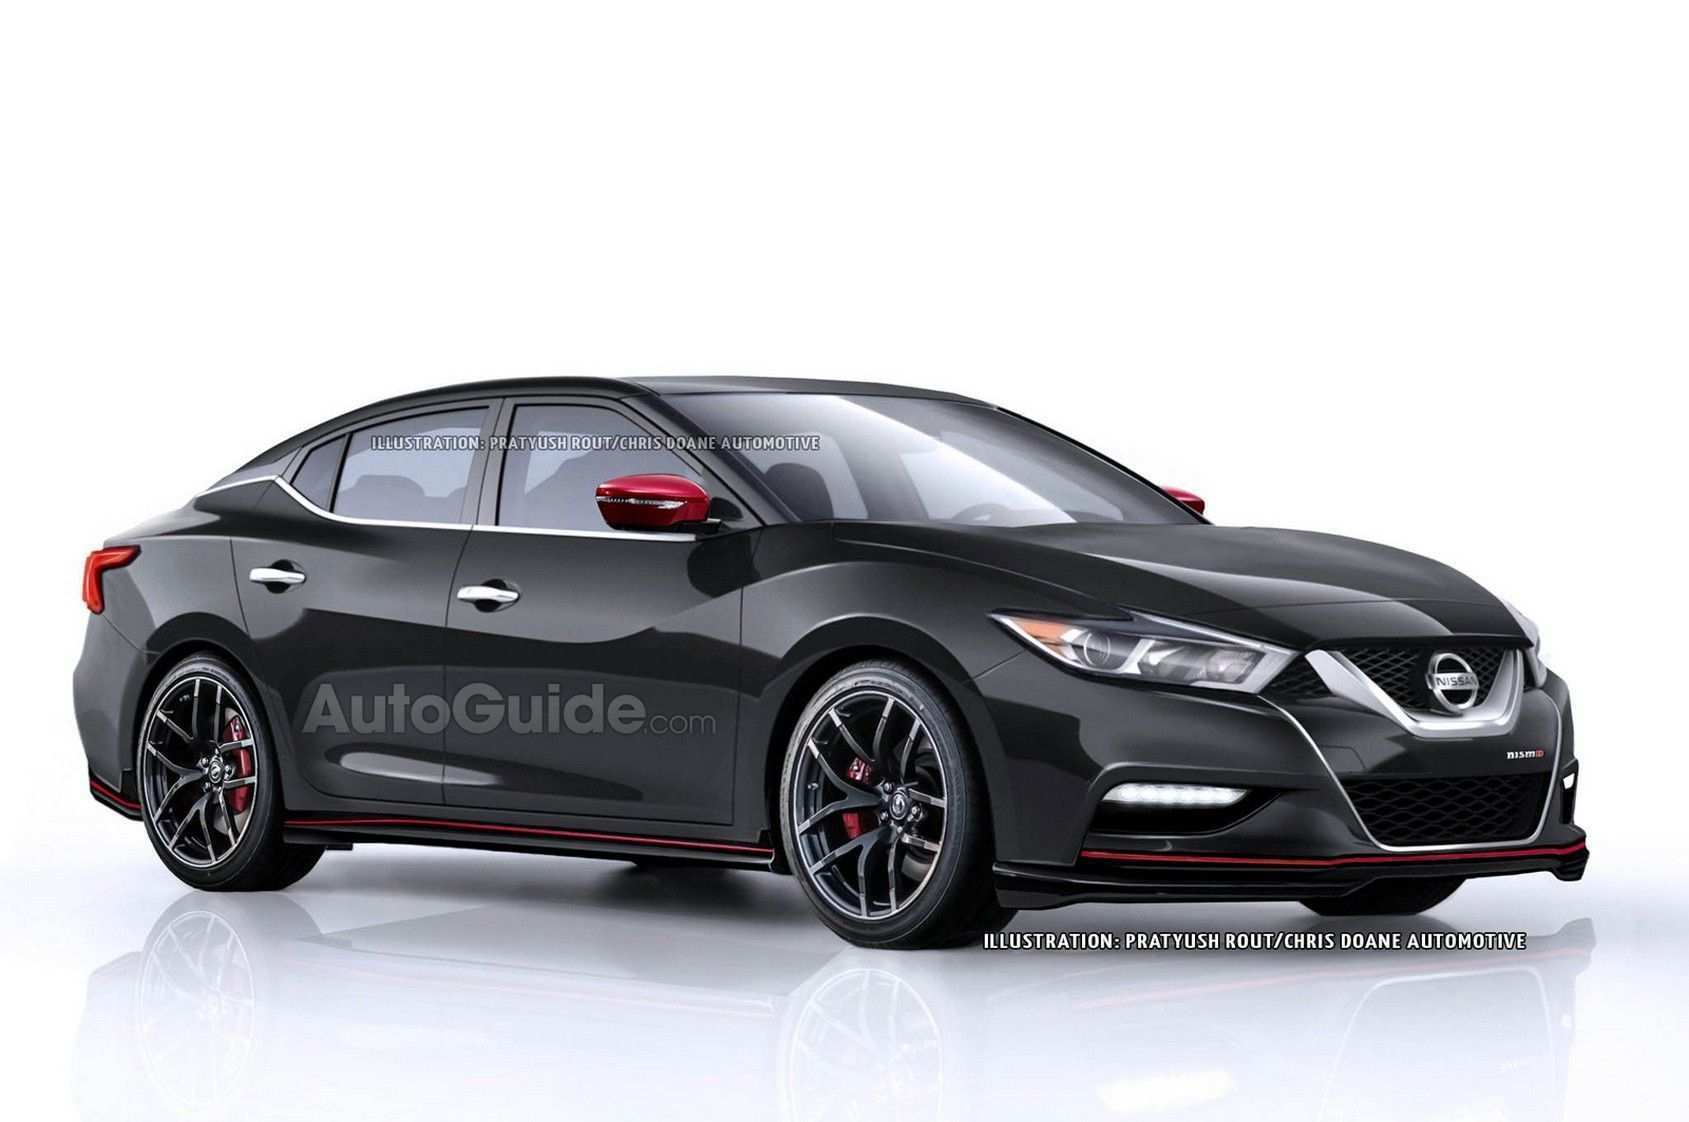 48 Great 2020 Nissan Maxima New Concept New Concept with 2020 Nissan Maxima New Concept